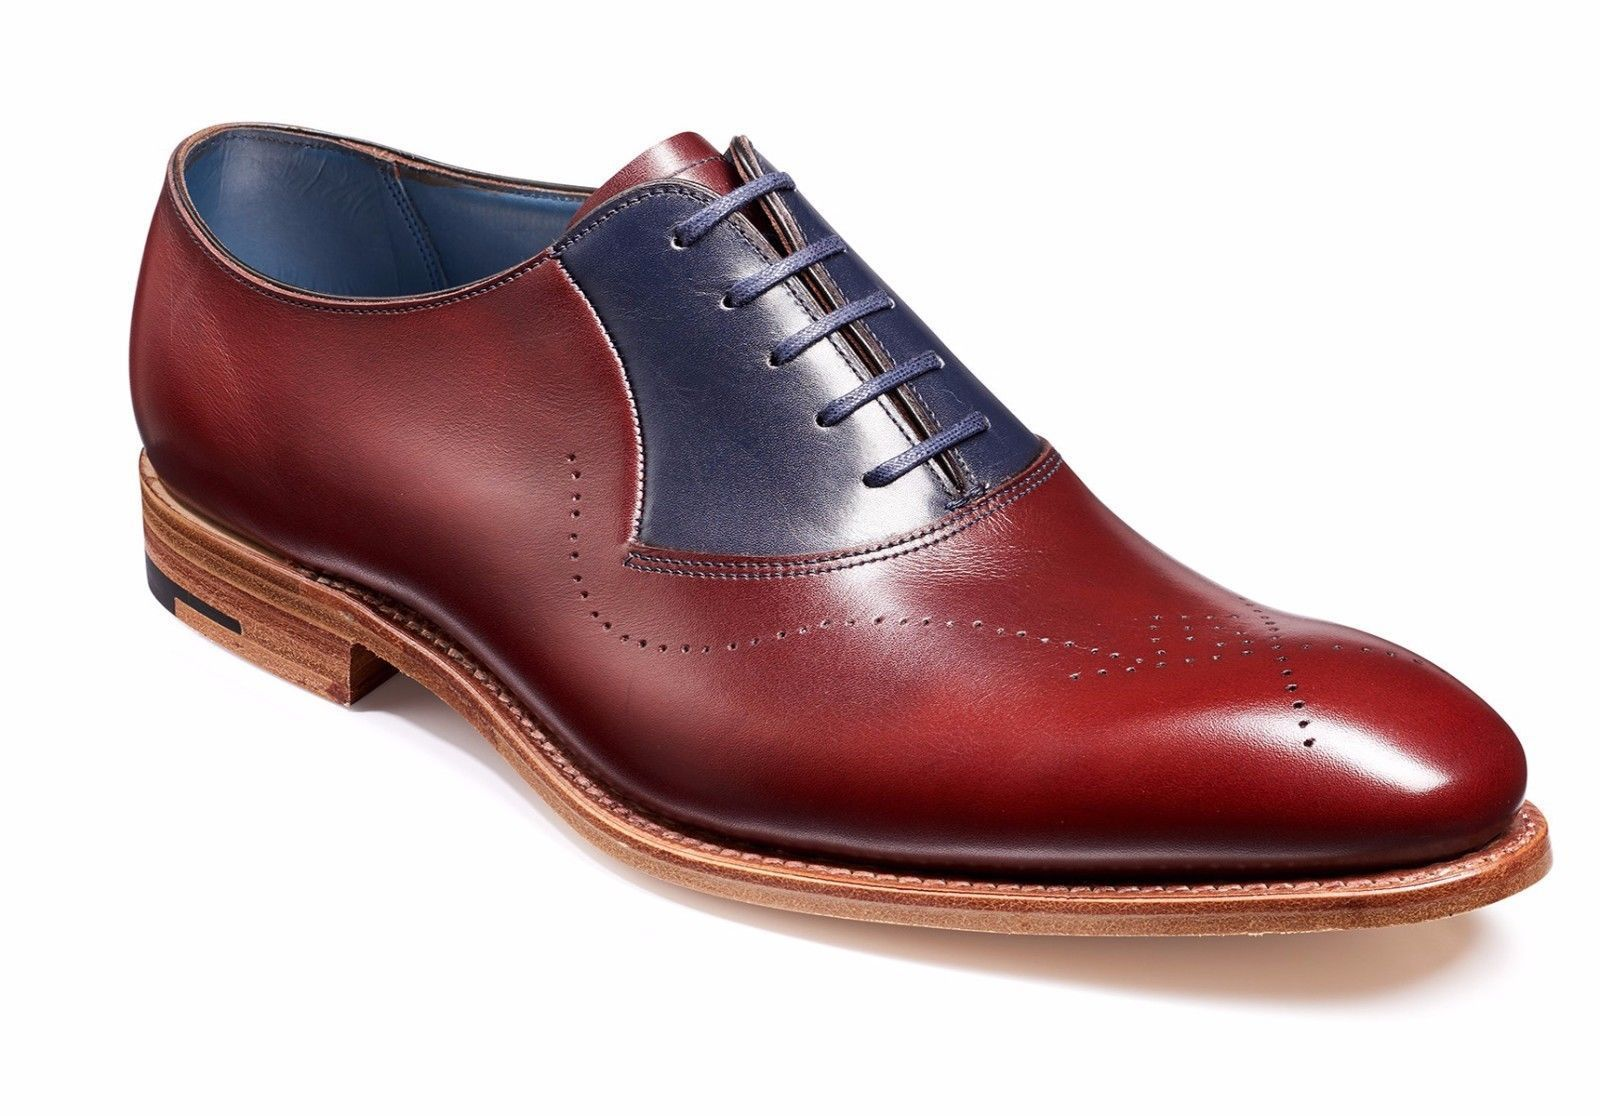 Handmade Men Oxford Dress Shoes Burgundy Navy Leather Suede Formal Tuxedo Shoes Dress Formal Leather Oxford Shoes Suede Leather Shoes Genuine Leather Shoes